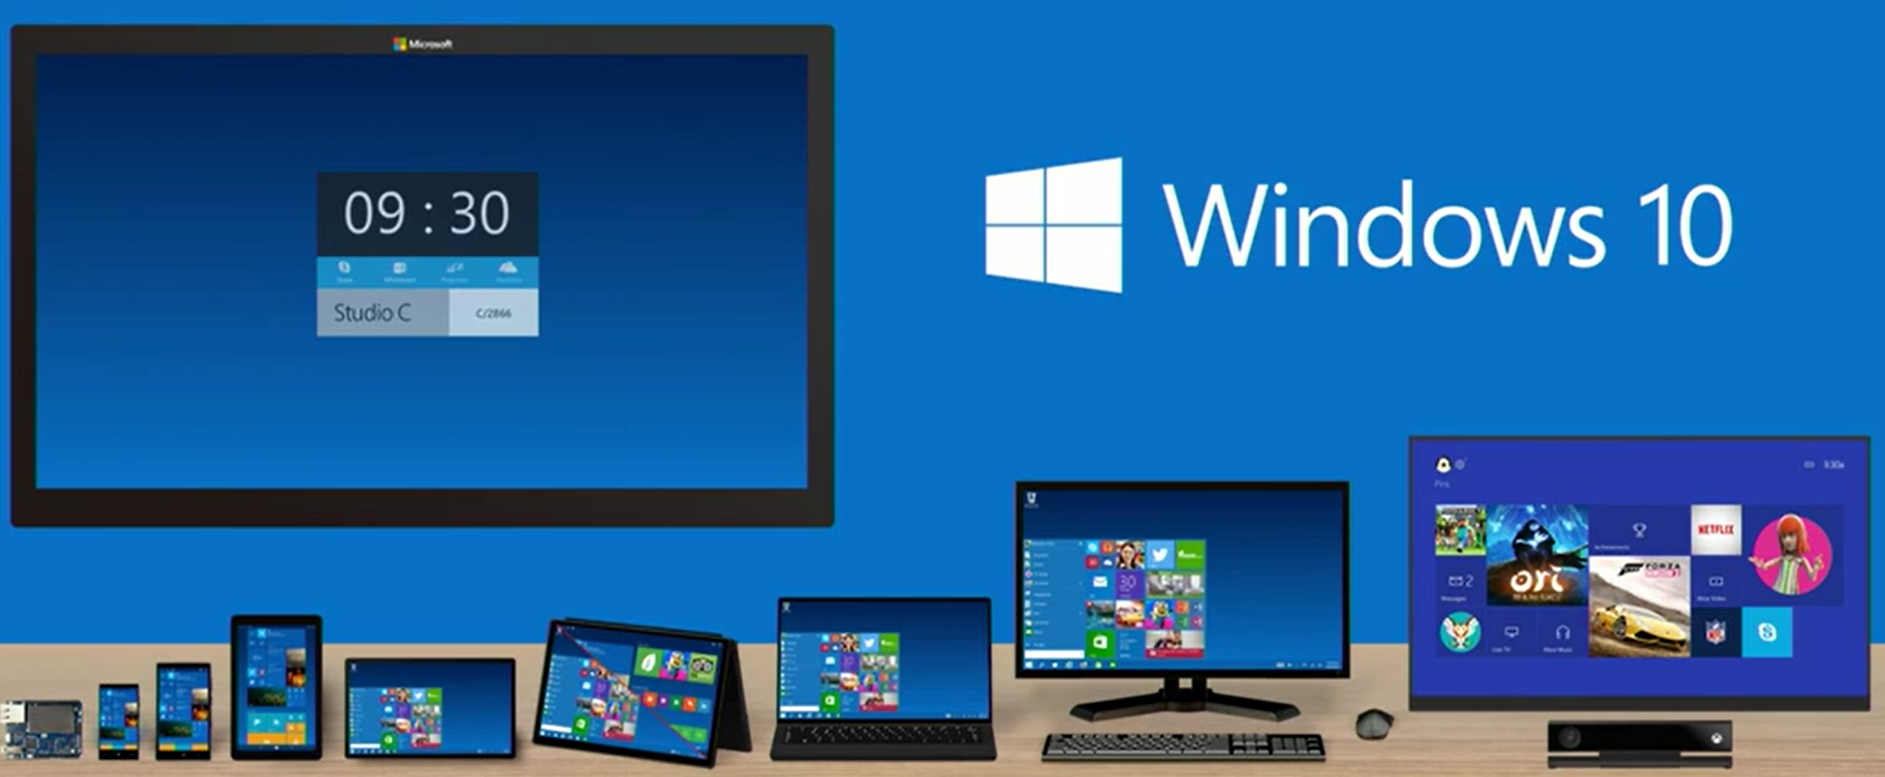 windows 10 menus and features